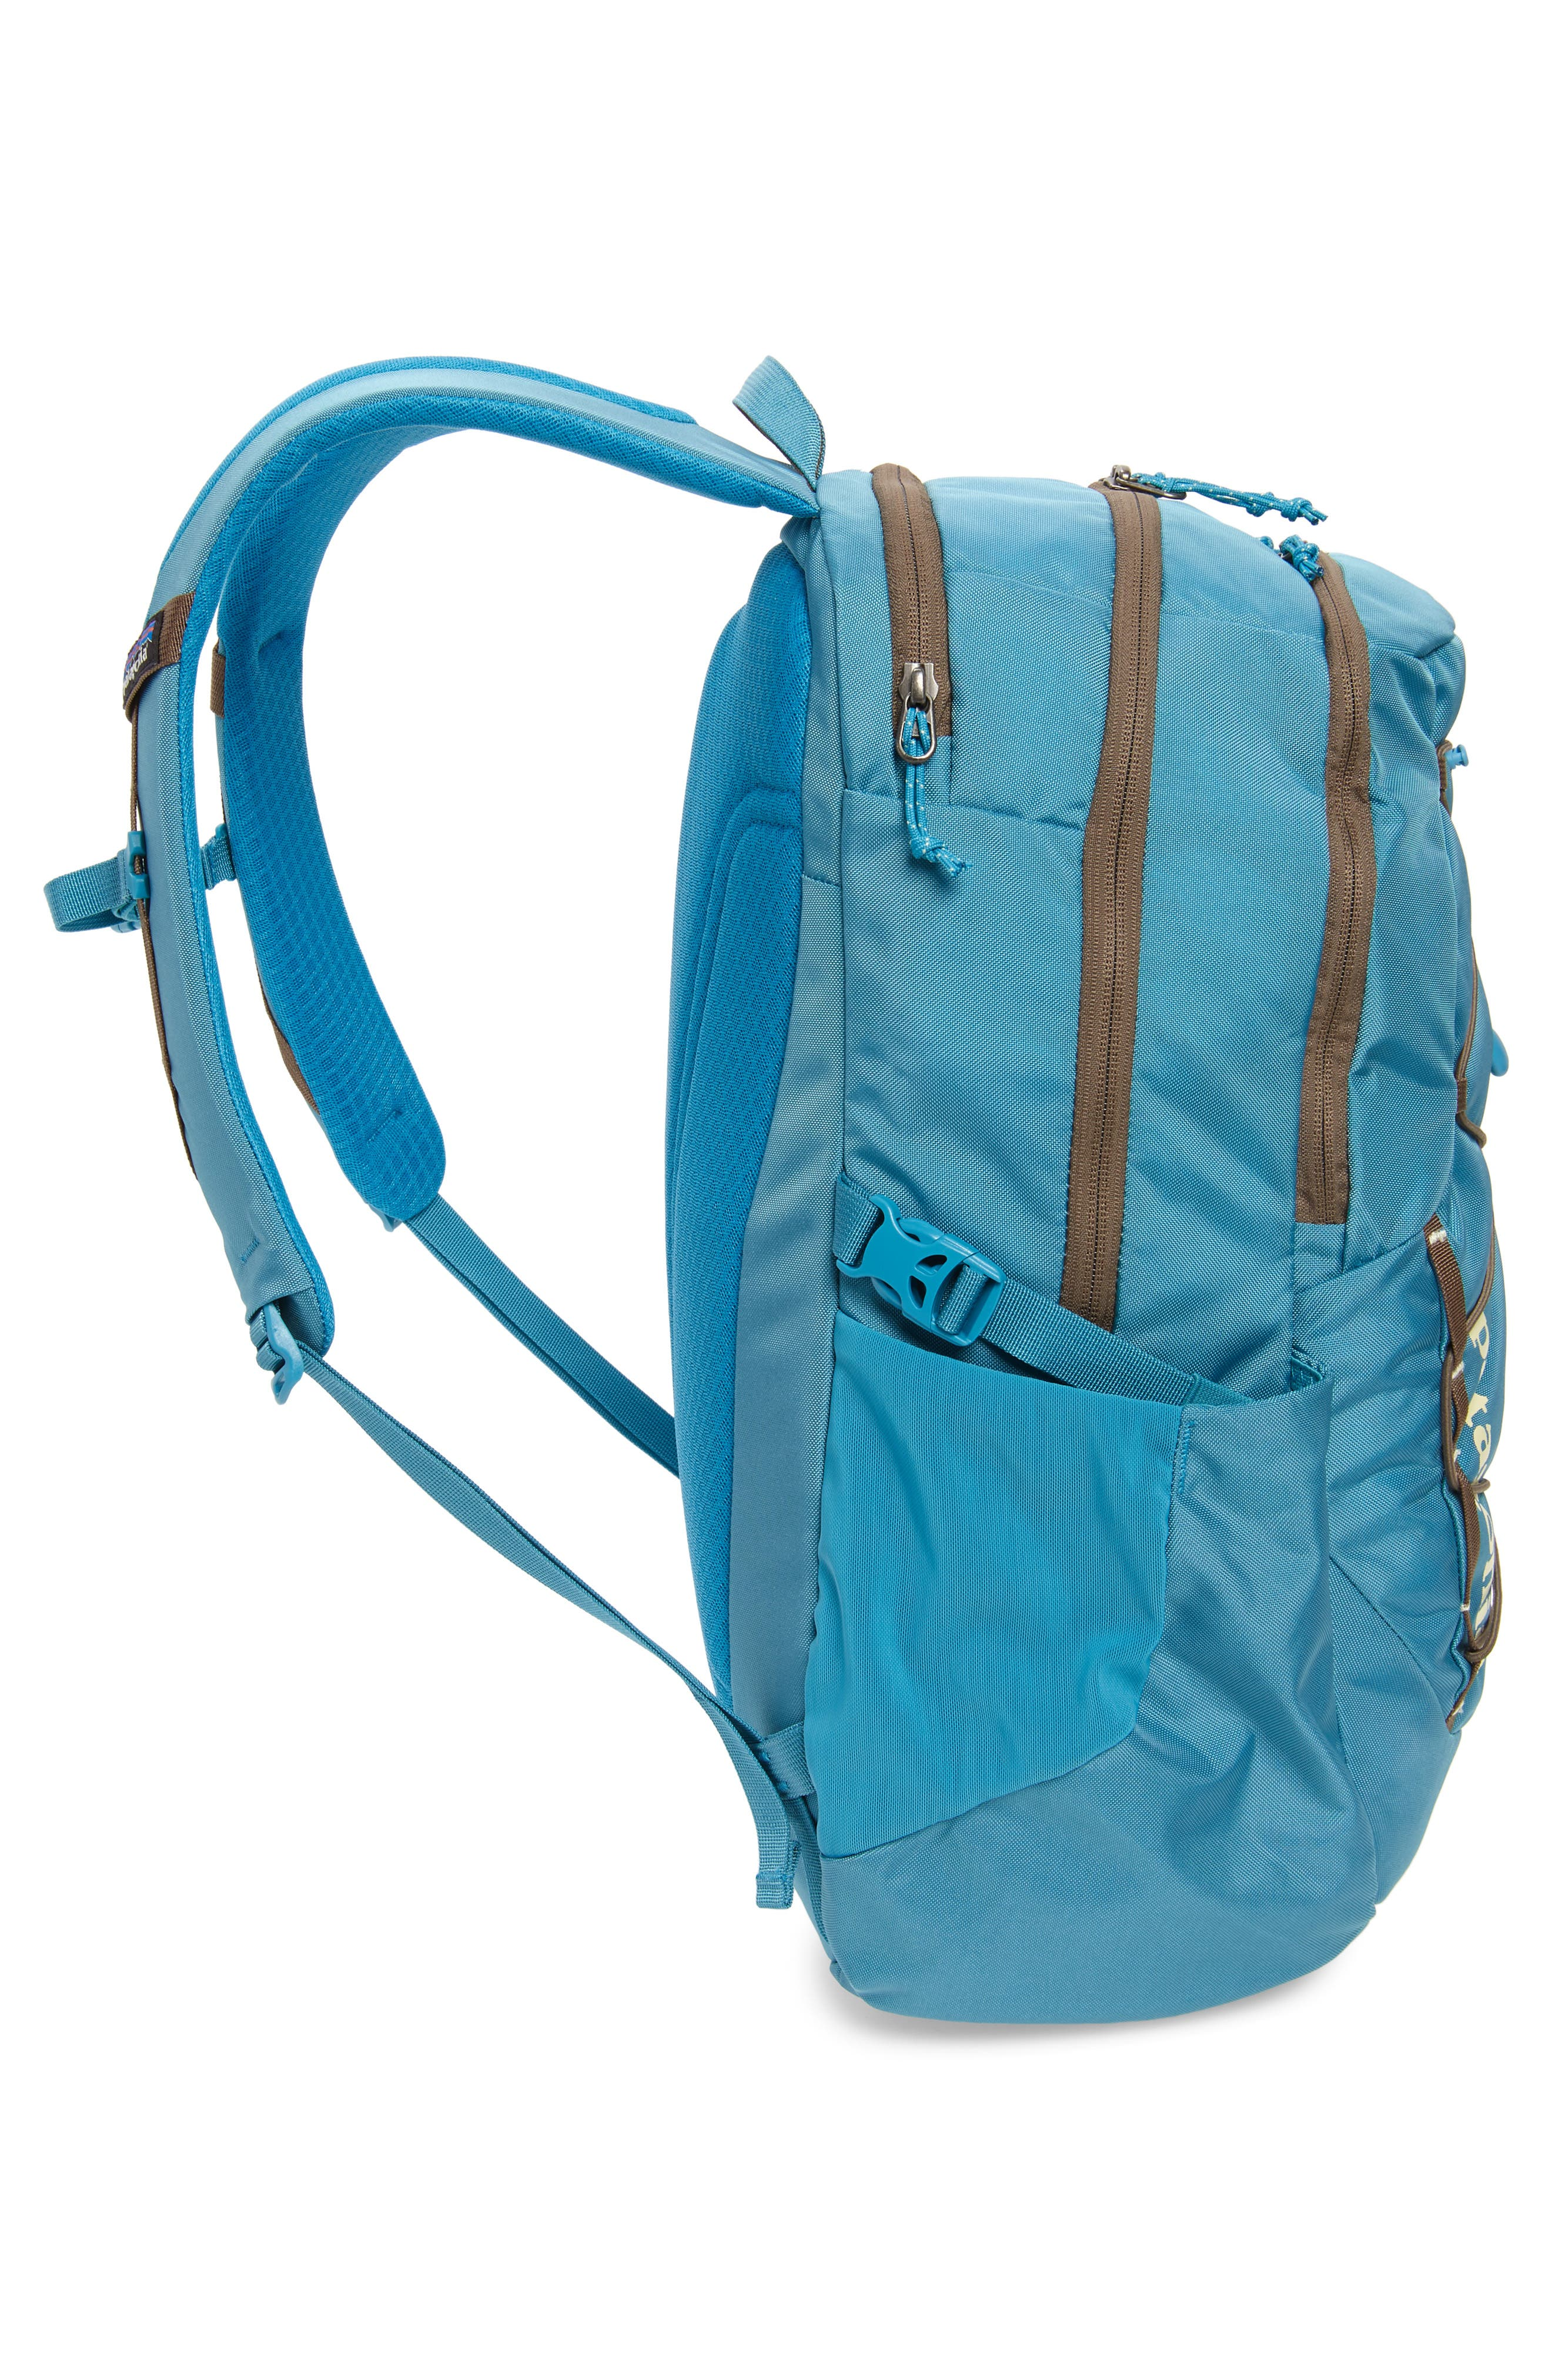 PATAGONIA,                             30L Chacabuco Backpack,                             Alternate thumbnail 5, color,                             MAKO BLUE